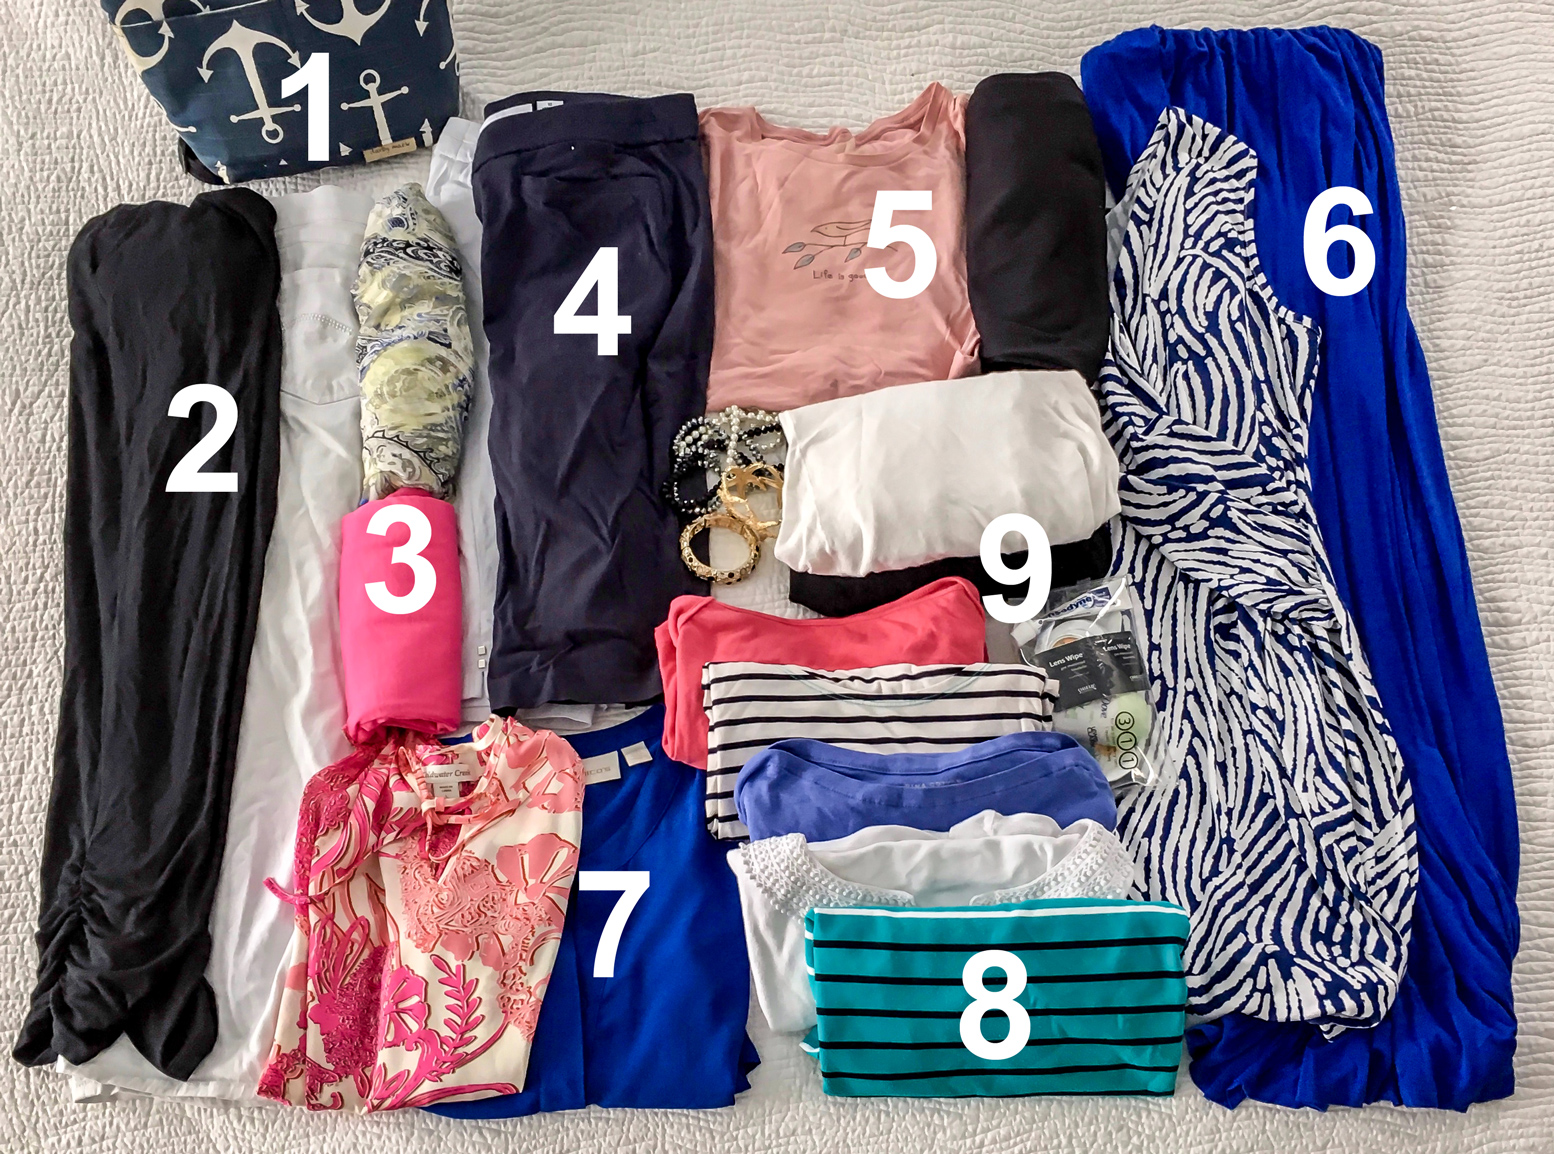 What I Packed for a Mediterranean Cruise - flatlay of travel clothing for a luxury cruise vacation